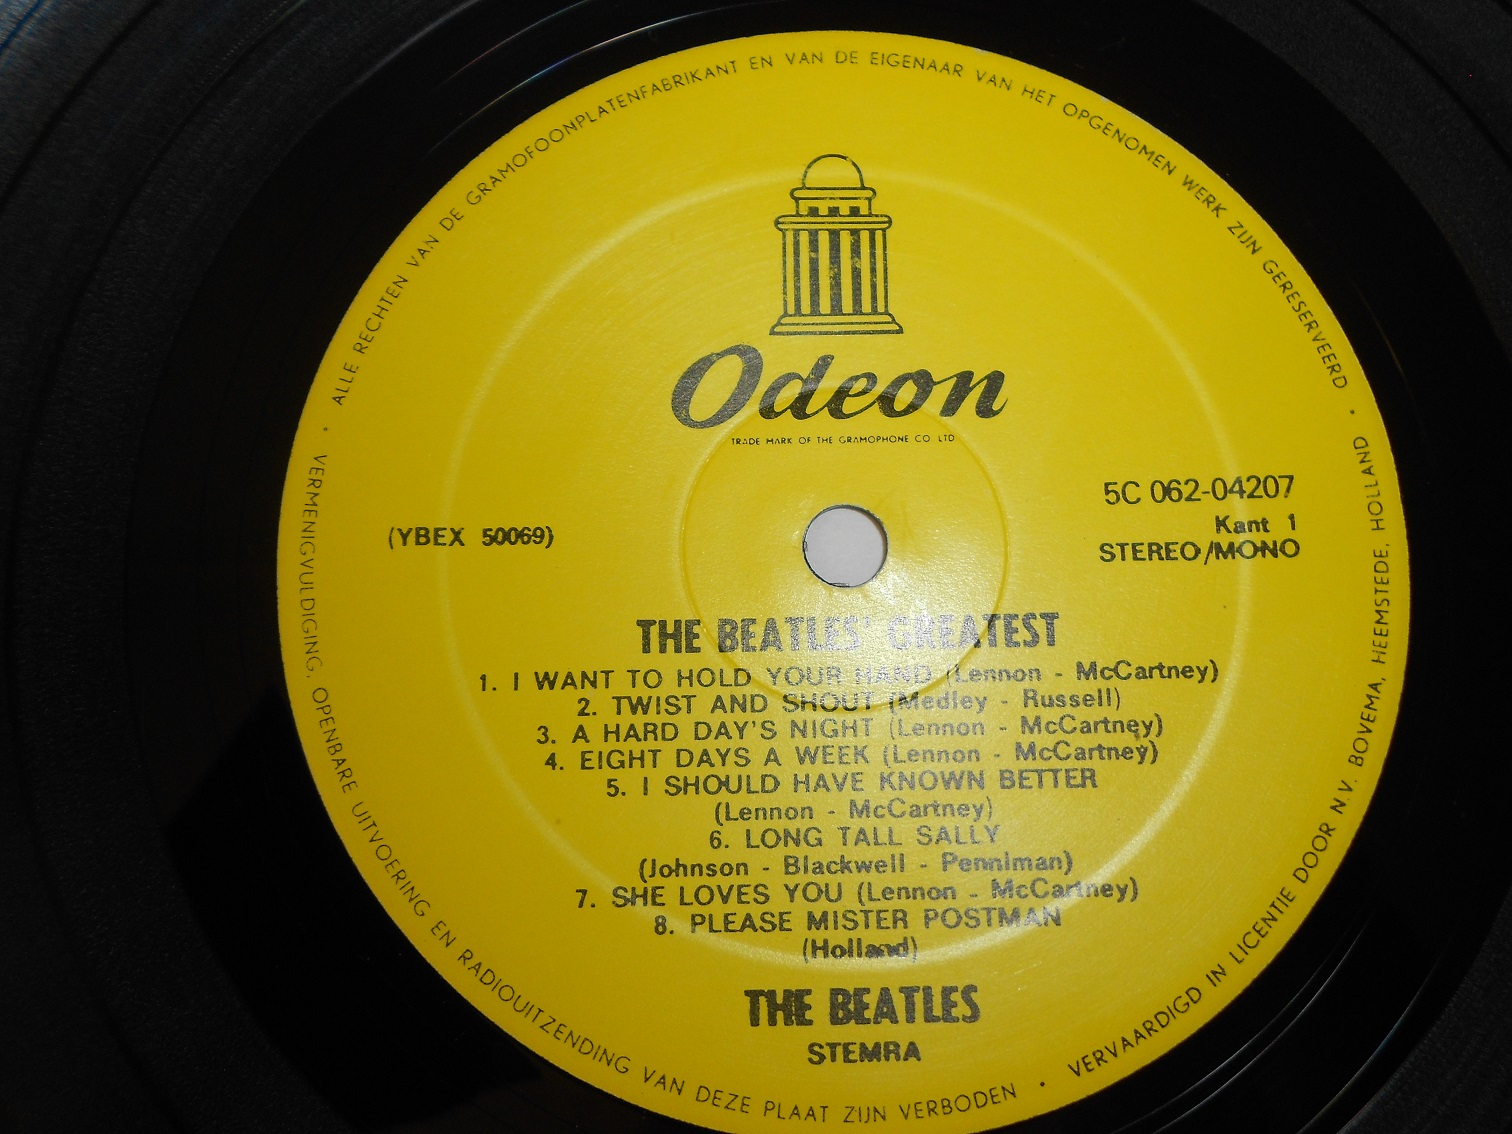 The Beatles - Beatles Greatest